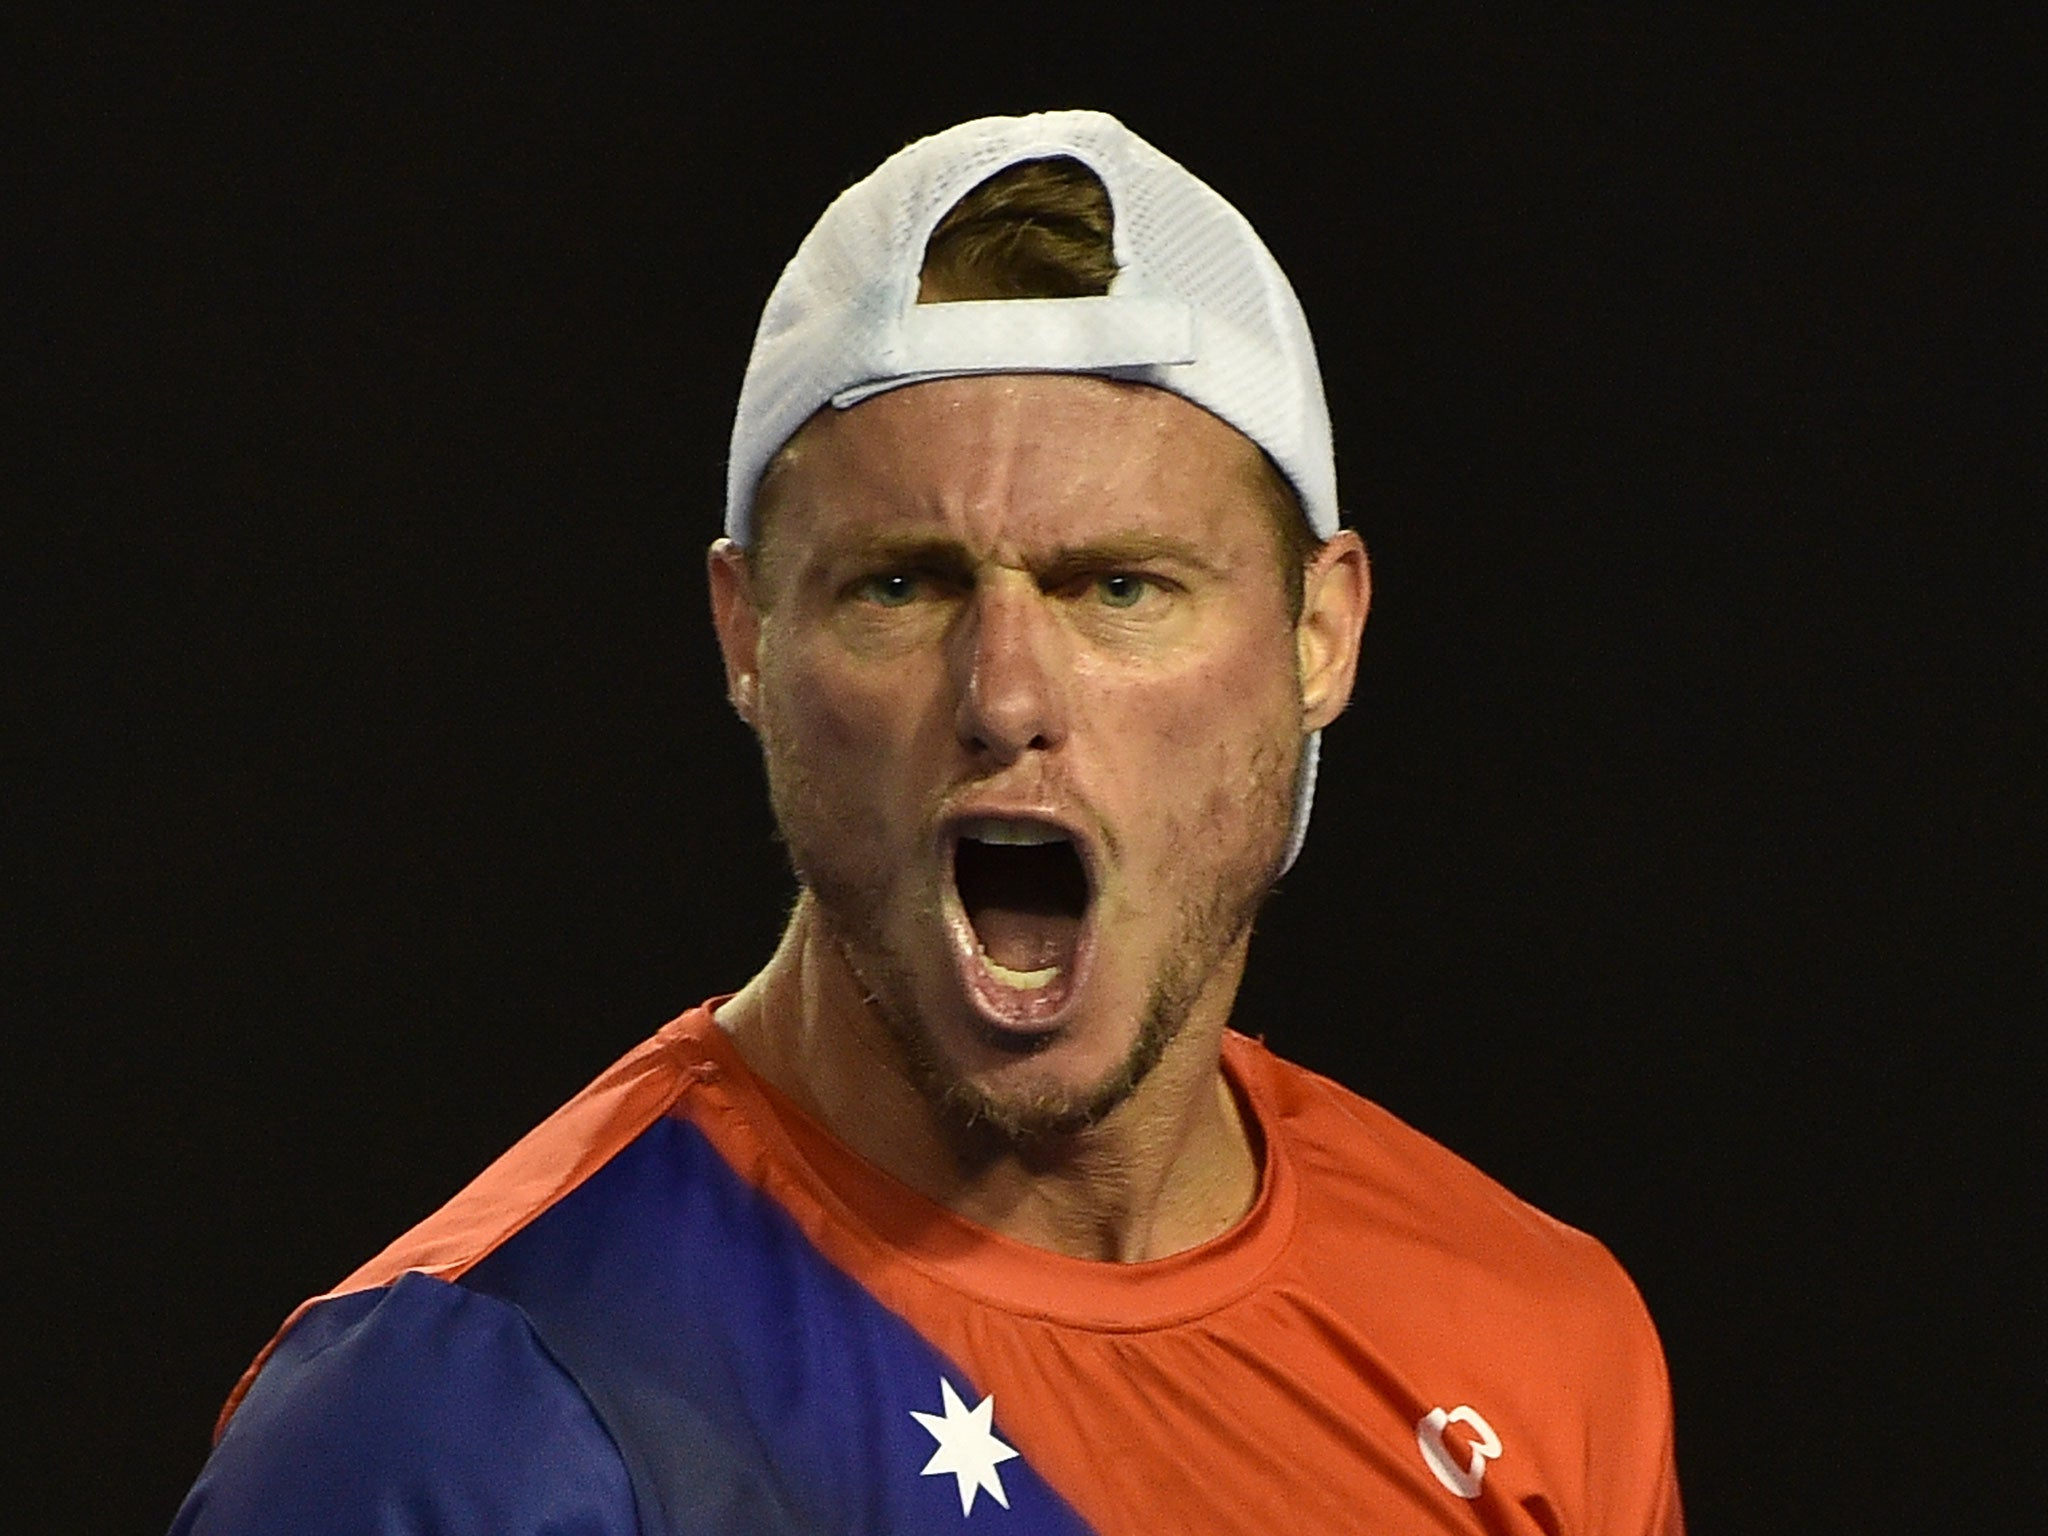 Lleyton Hewitt calls umpire a freaking idiot and line judge a